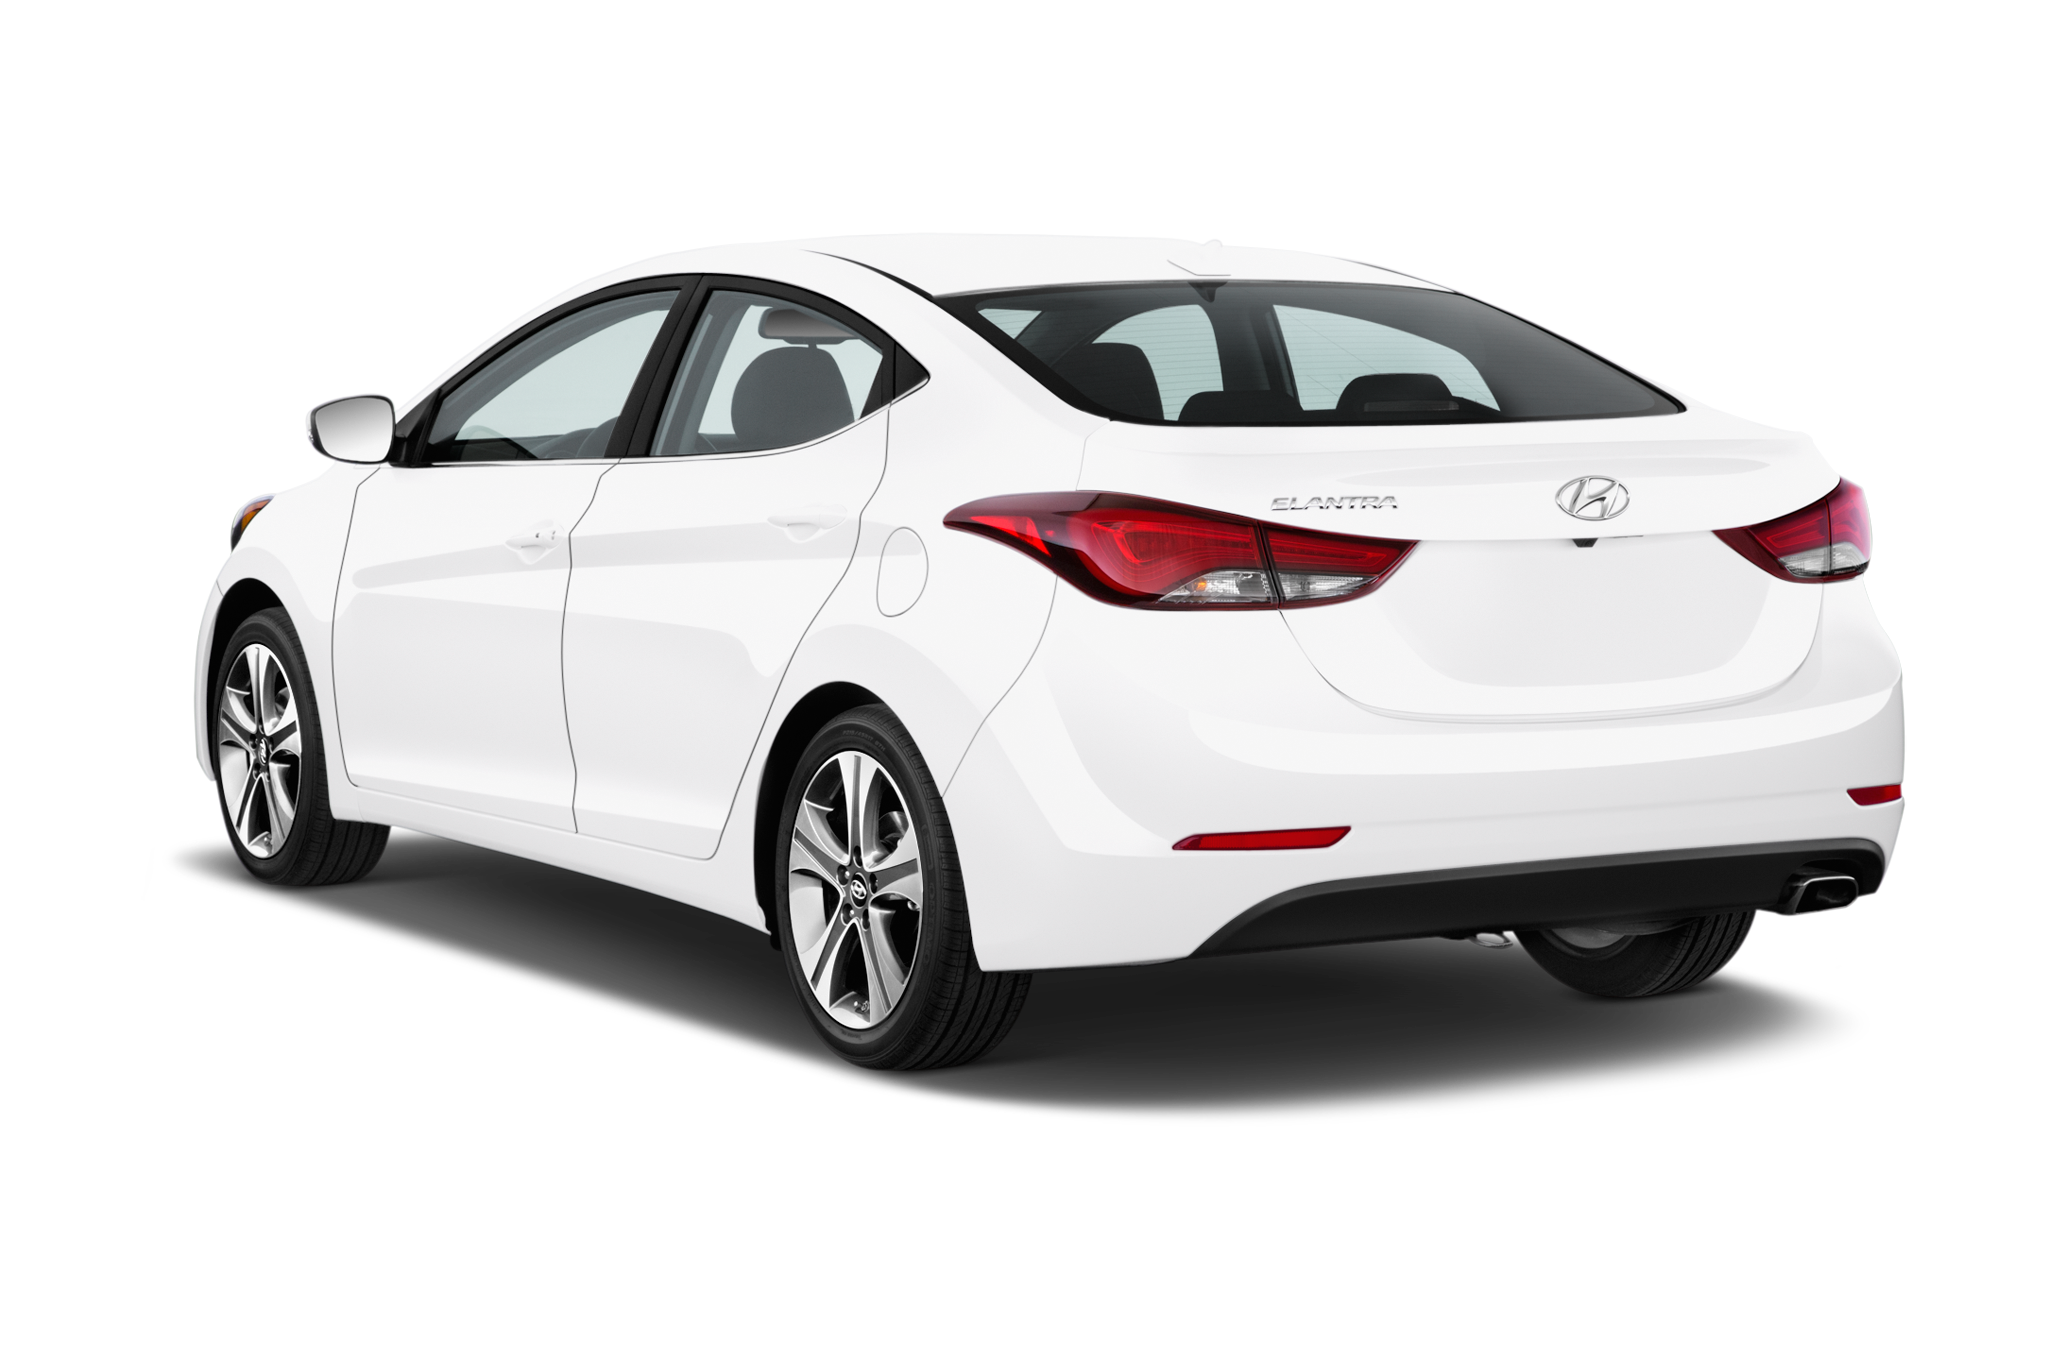 2015 hyundai elantra priced from 18 060. Black Bedroom Furniture Sets. Home Design Ideas